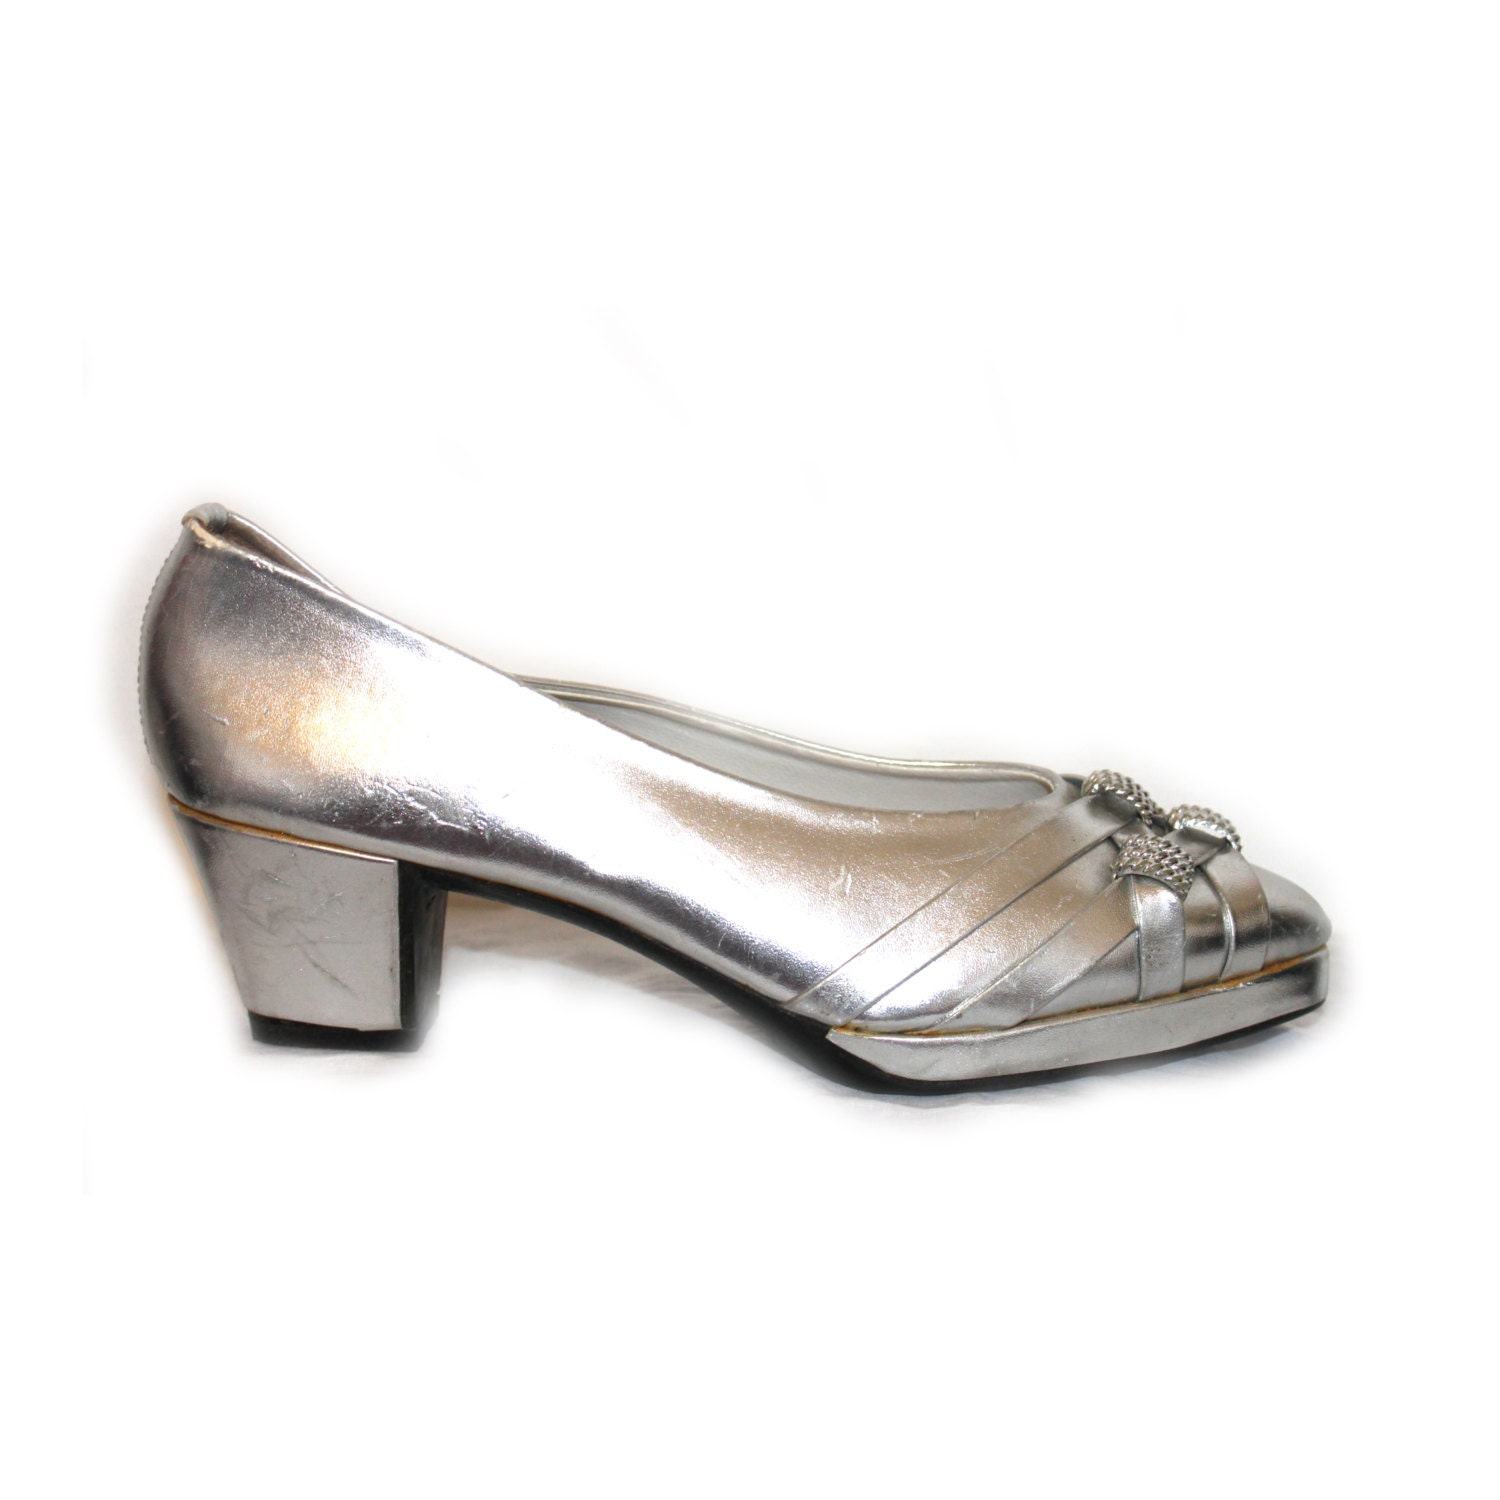 1970s 70s silver platform shoe evening by